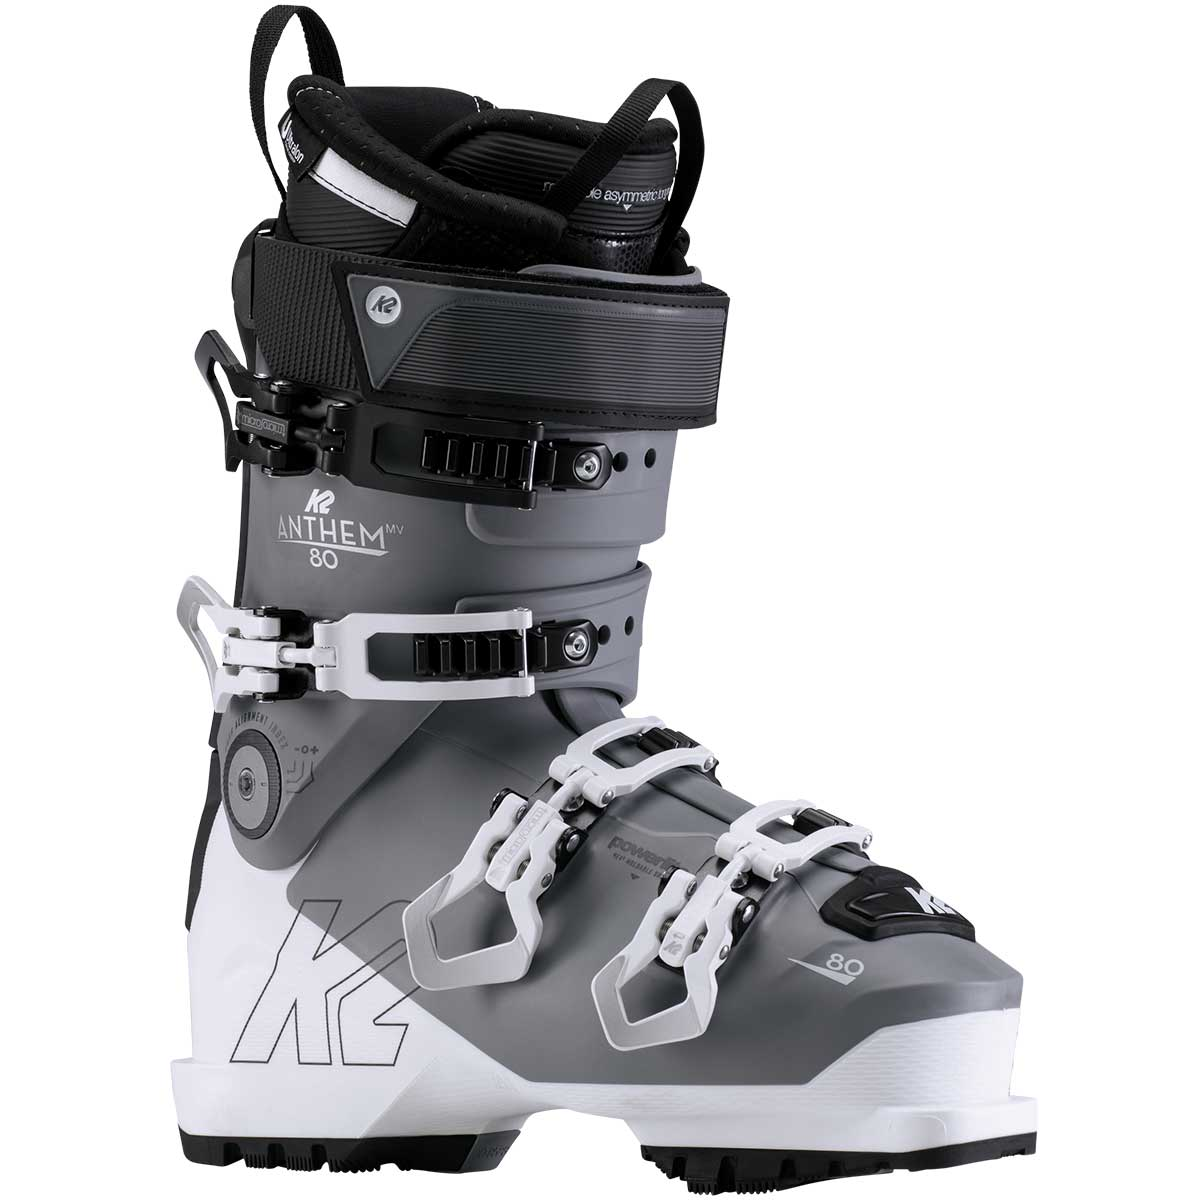 K2 Anthem 80 LV women's ski boot in grey